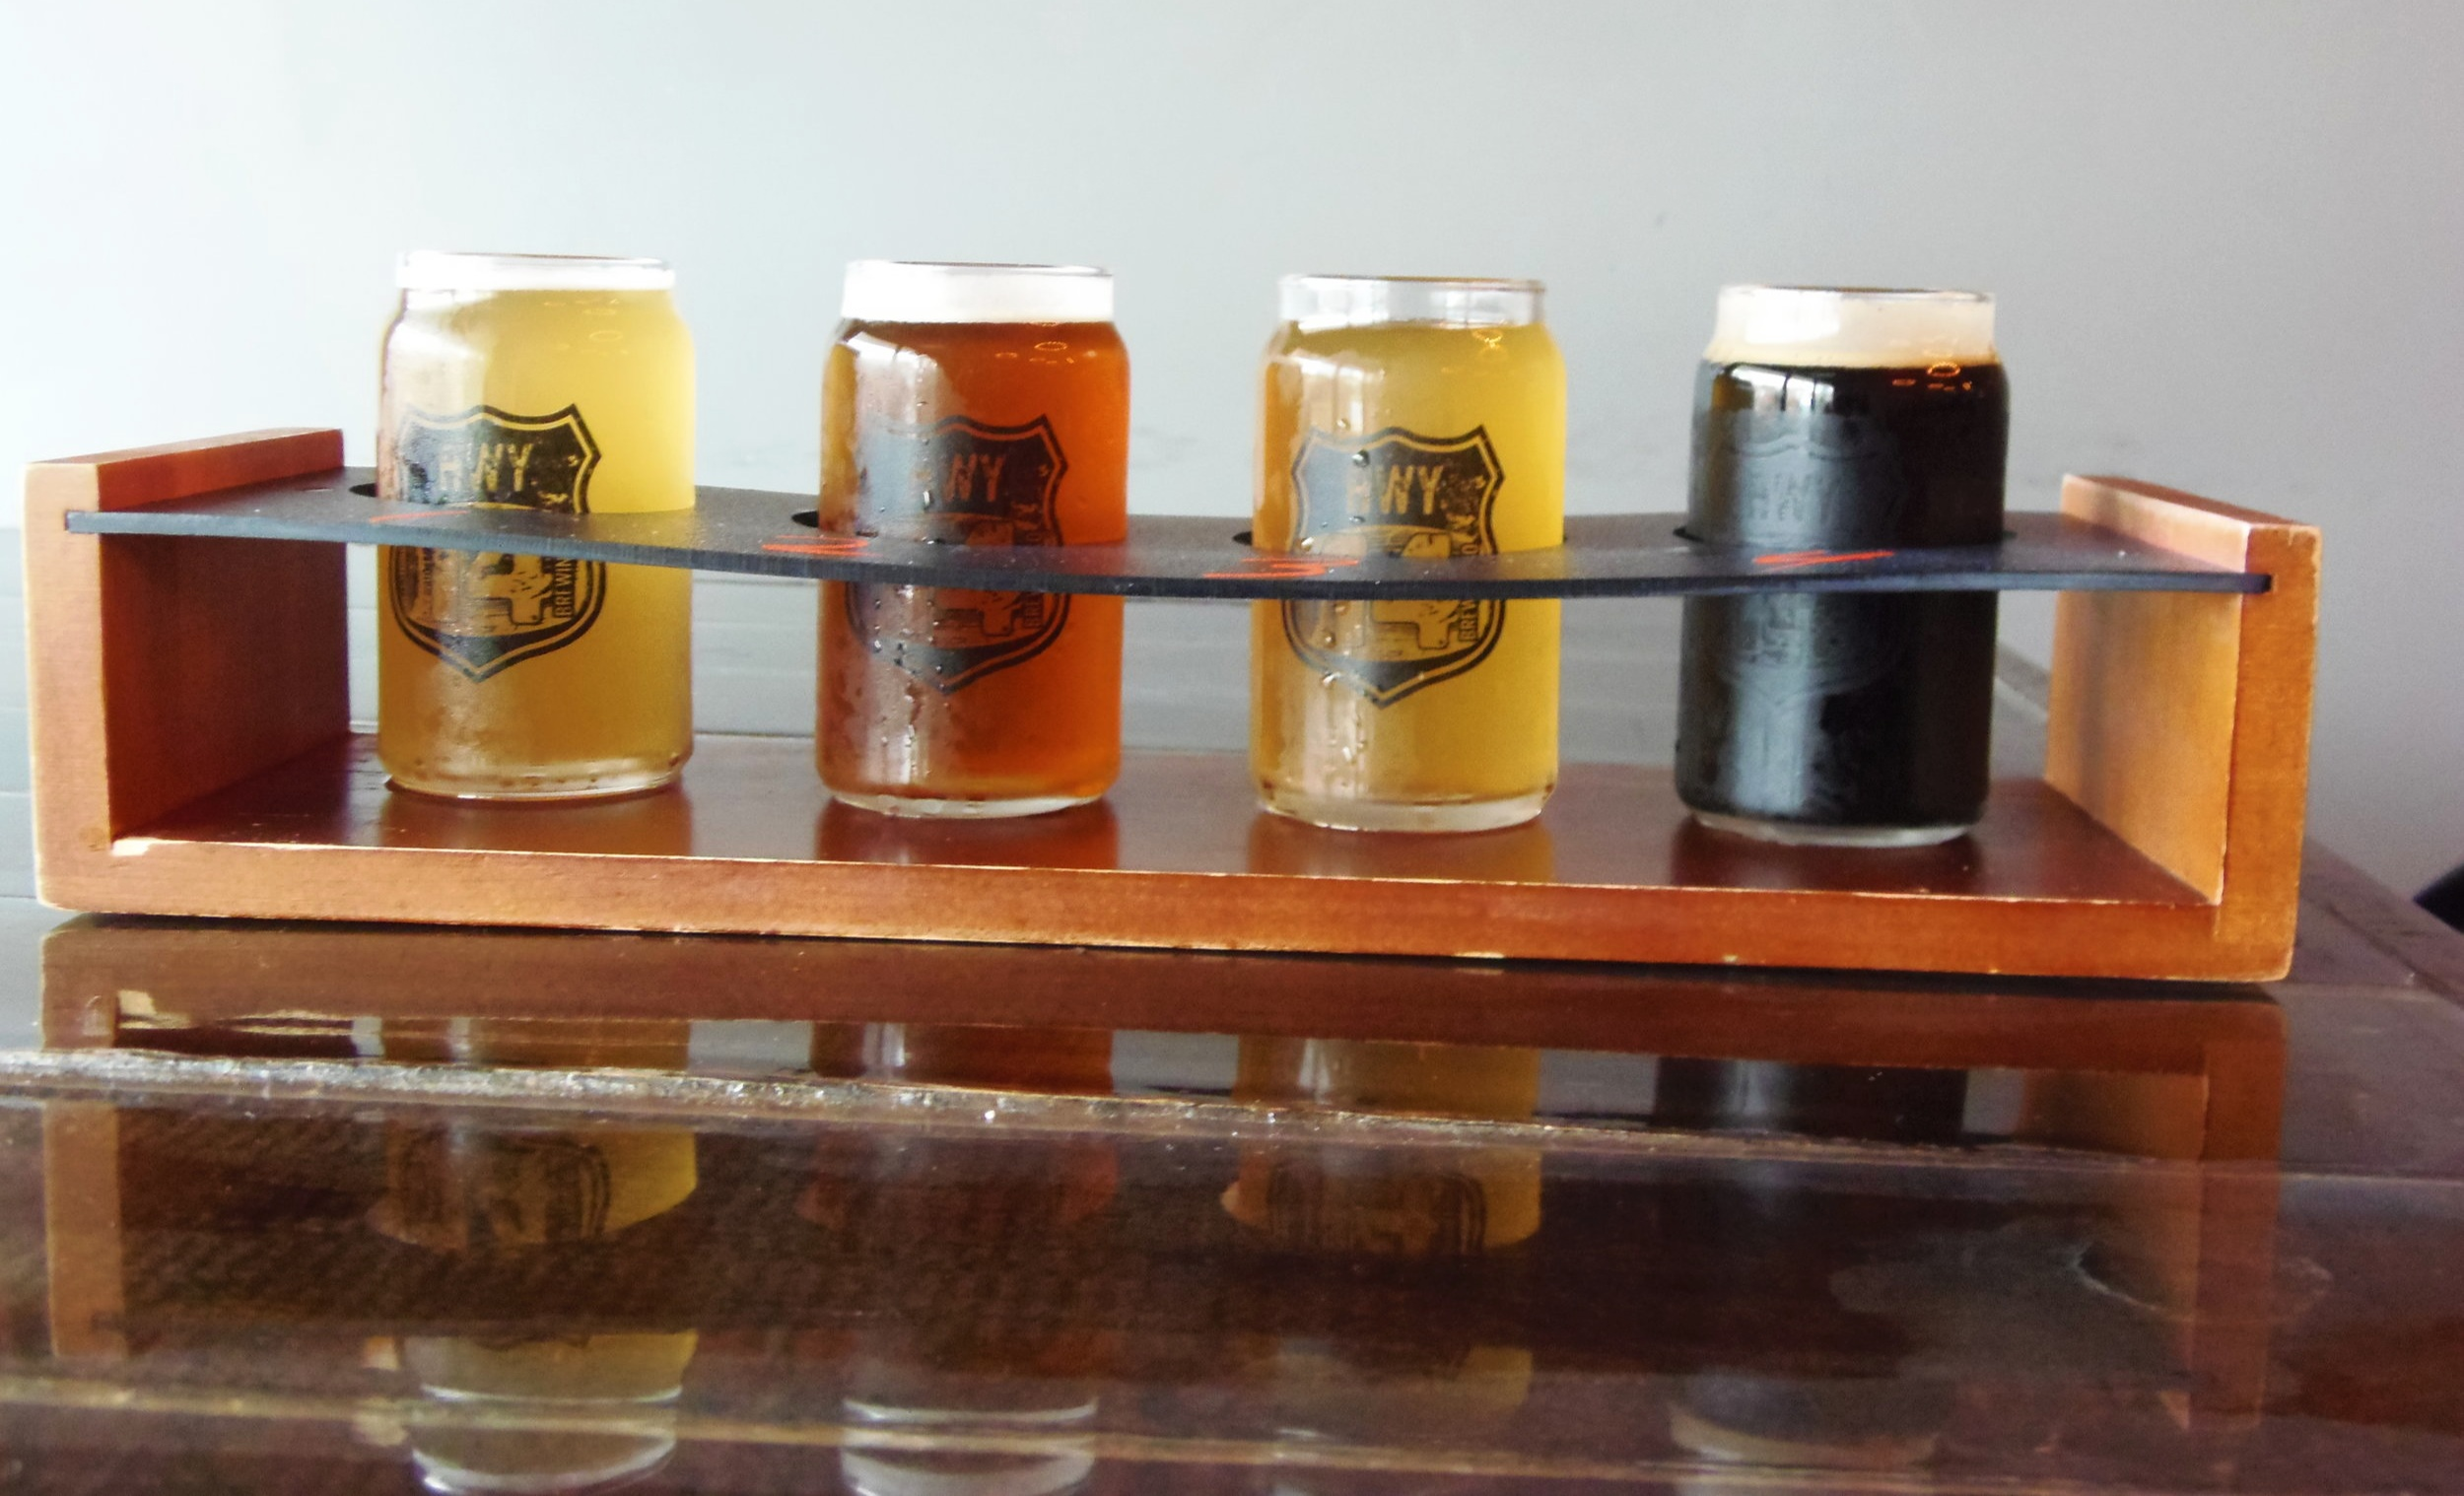 Flights are a must especially with 12 beers on tap